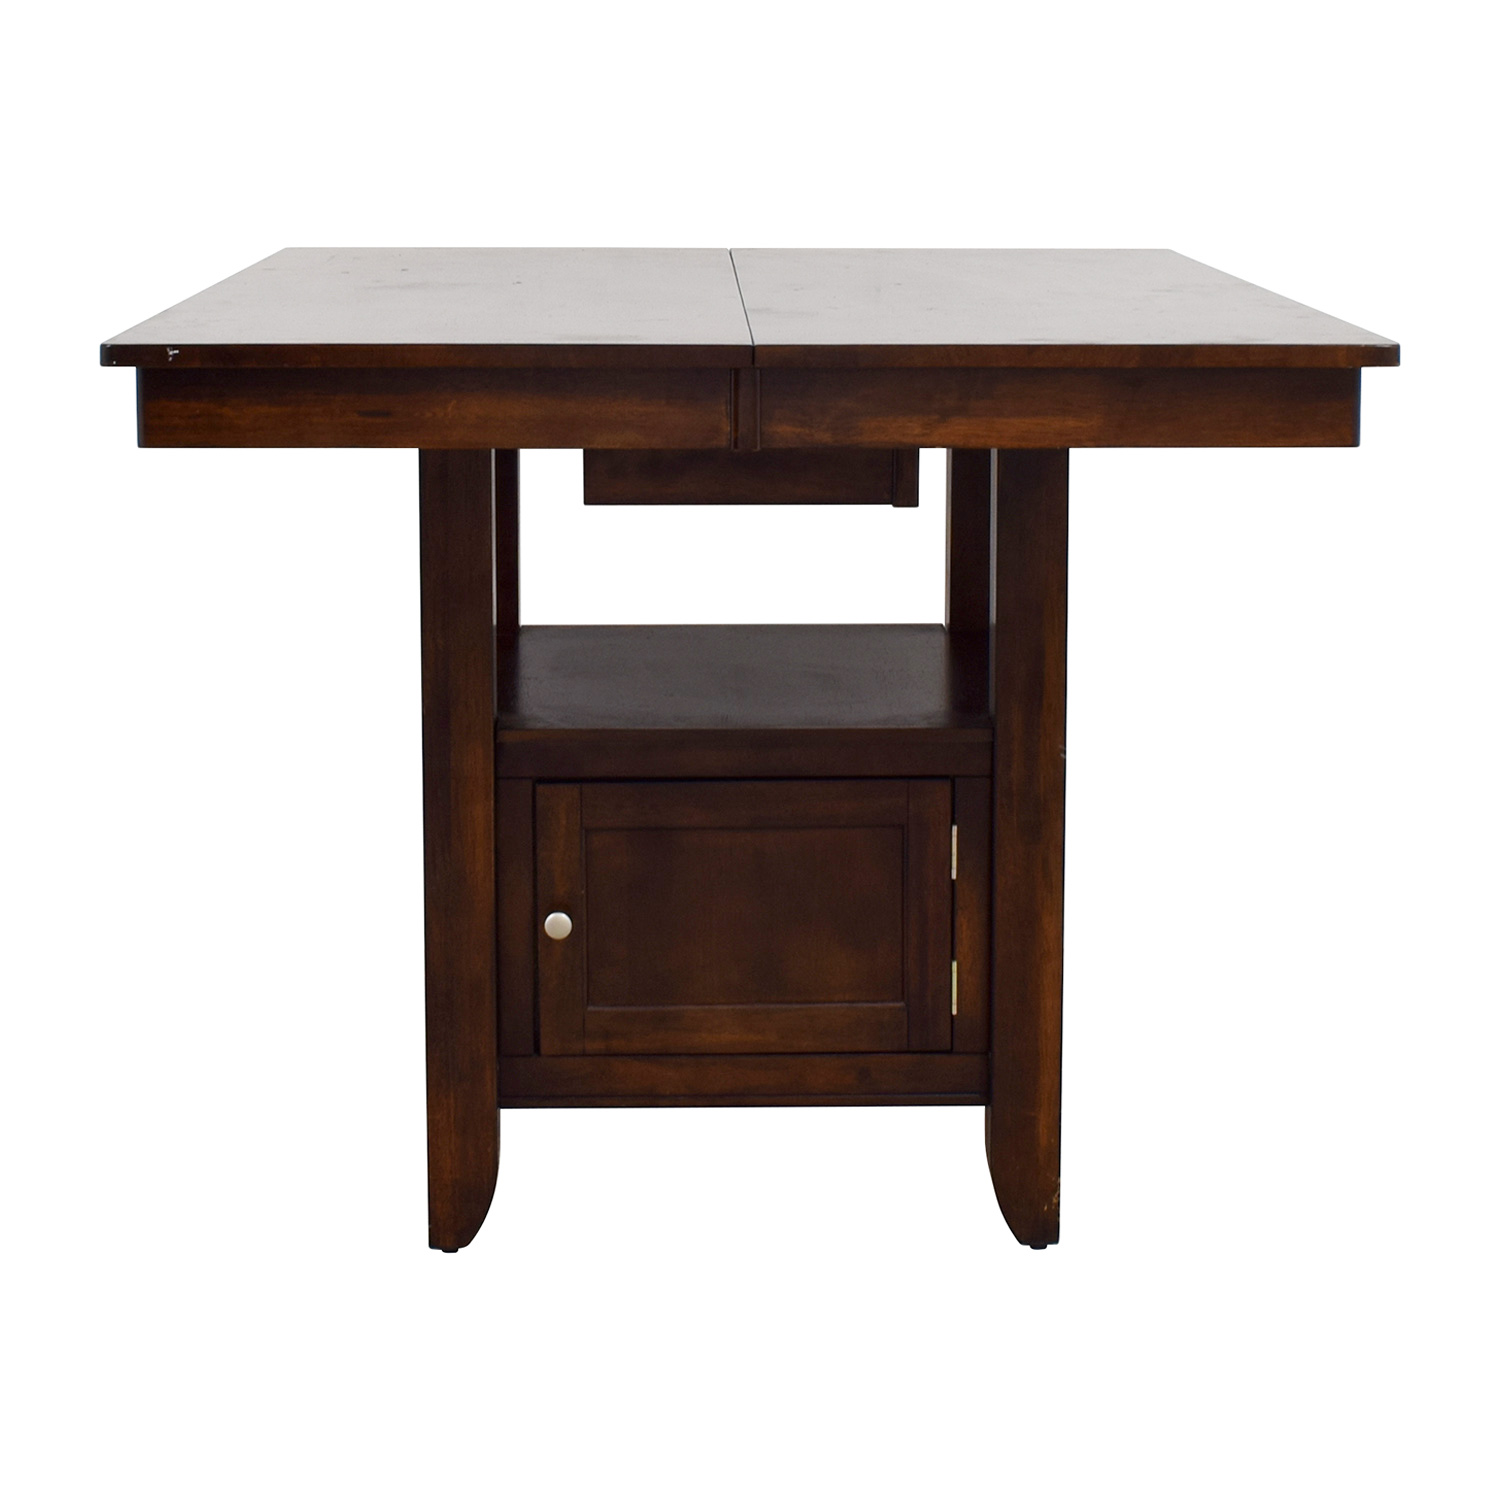 Wood Dining Table with Storage second hand